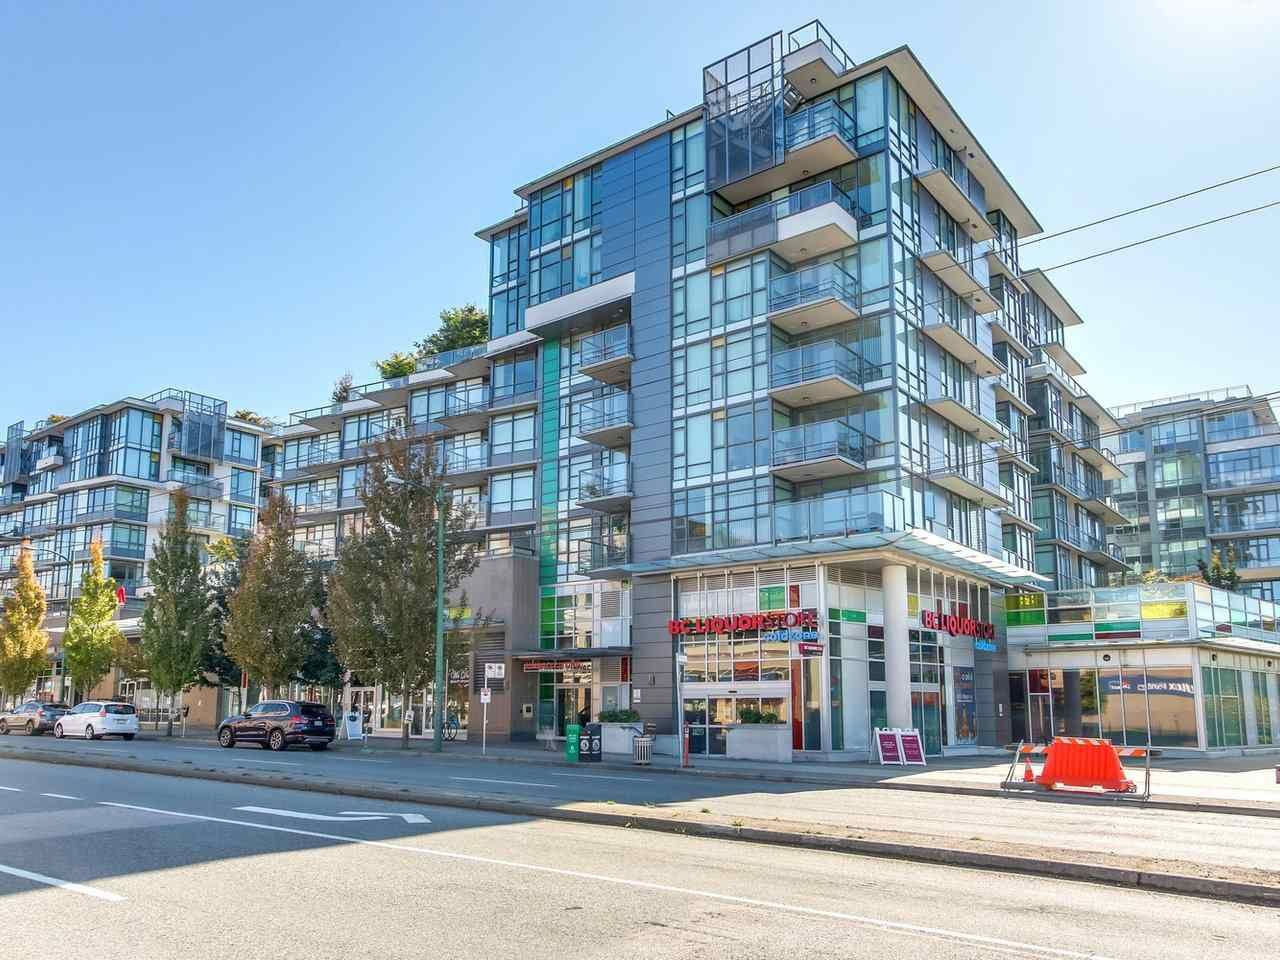 "Main Photo: 375 2080 W BROADWAY in Vancouver: Kitsilano Condo for sale in ""PINNACLE LIVING ON BROADWAY"" (Vancouver West)  : MLS®# R2211453"